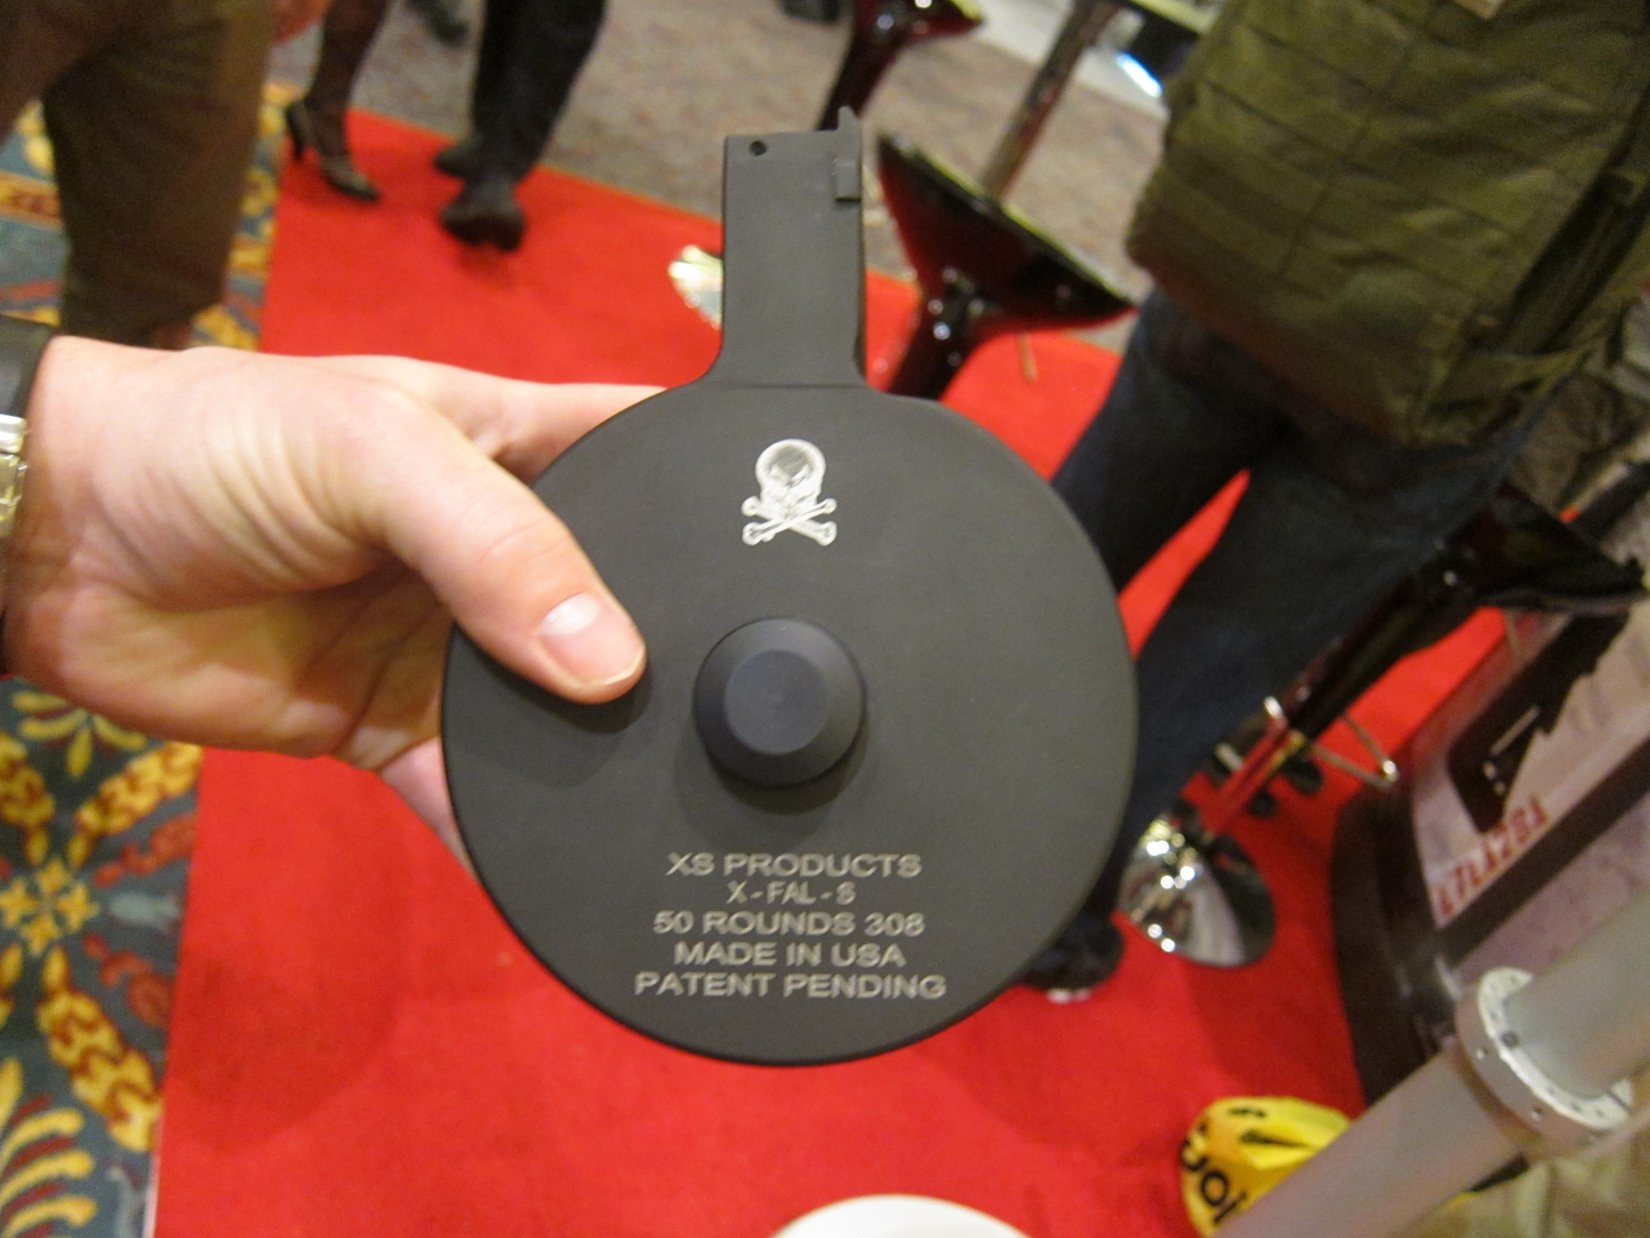 XS Products X FAL S 50 Round 7.62x51mm NATO .308 Win. Drum Magazine SHOT Show 2012 DefenseReview.com DR 1 XS Products 50 Round Drum Magazines for 5.56x45mm NATO/.223 Rem. and 7.62x51mm NATO/.308 Win. Tactical Rifle/Carbine/SBRs!